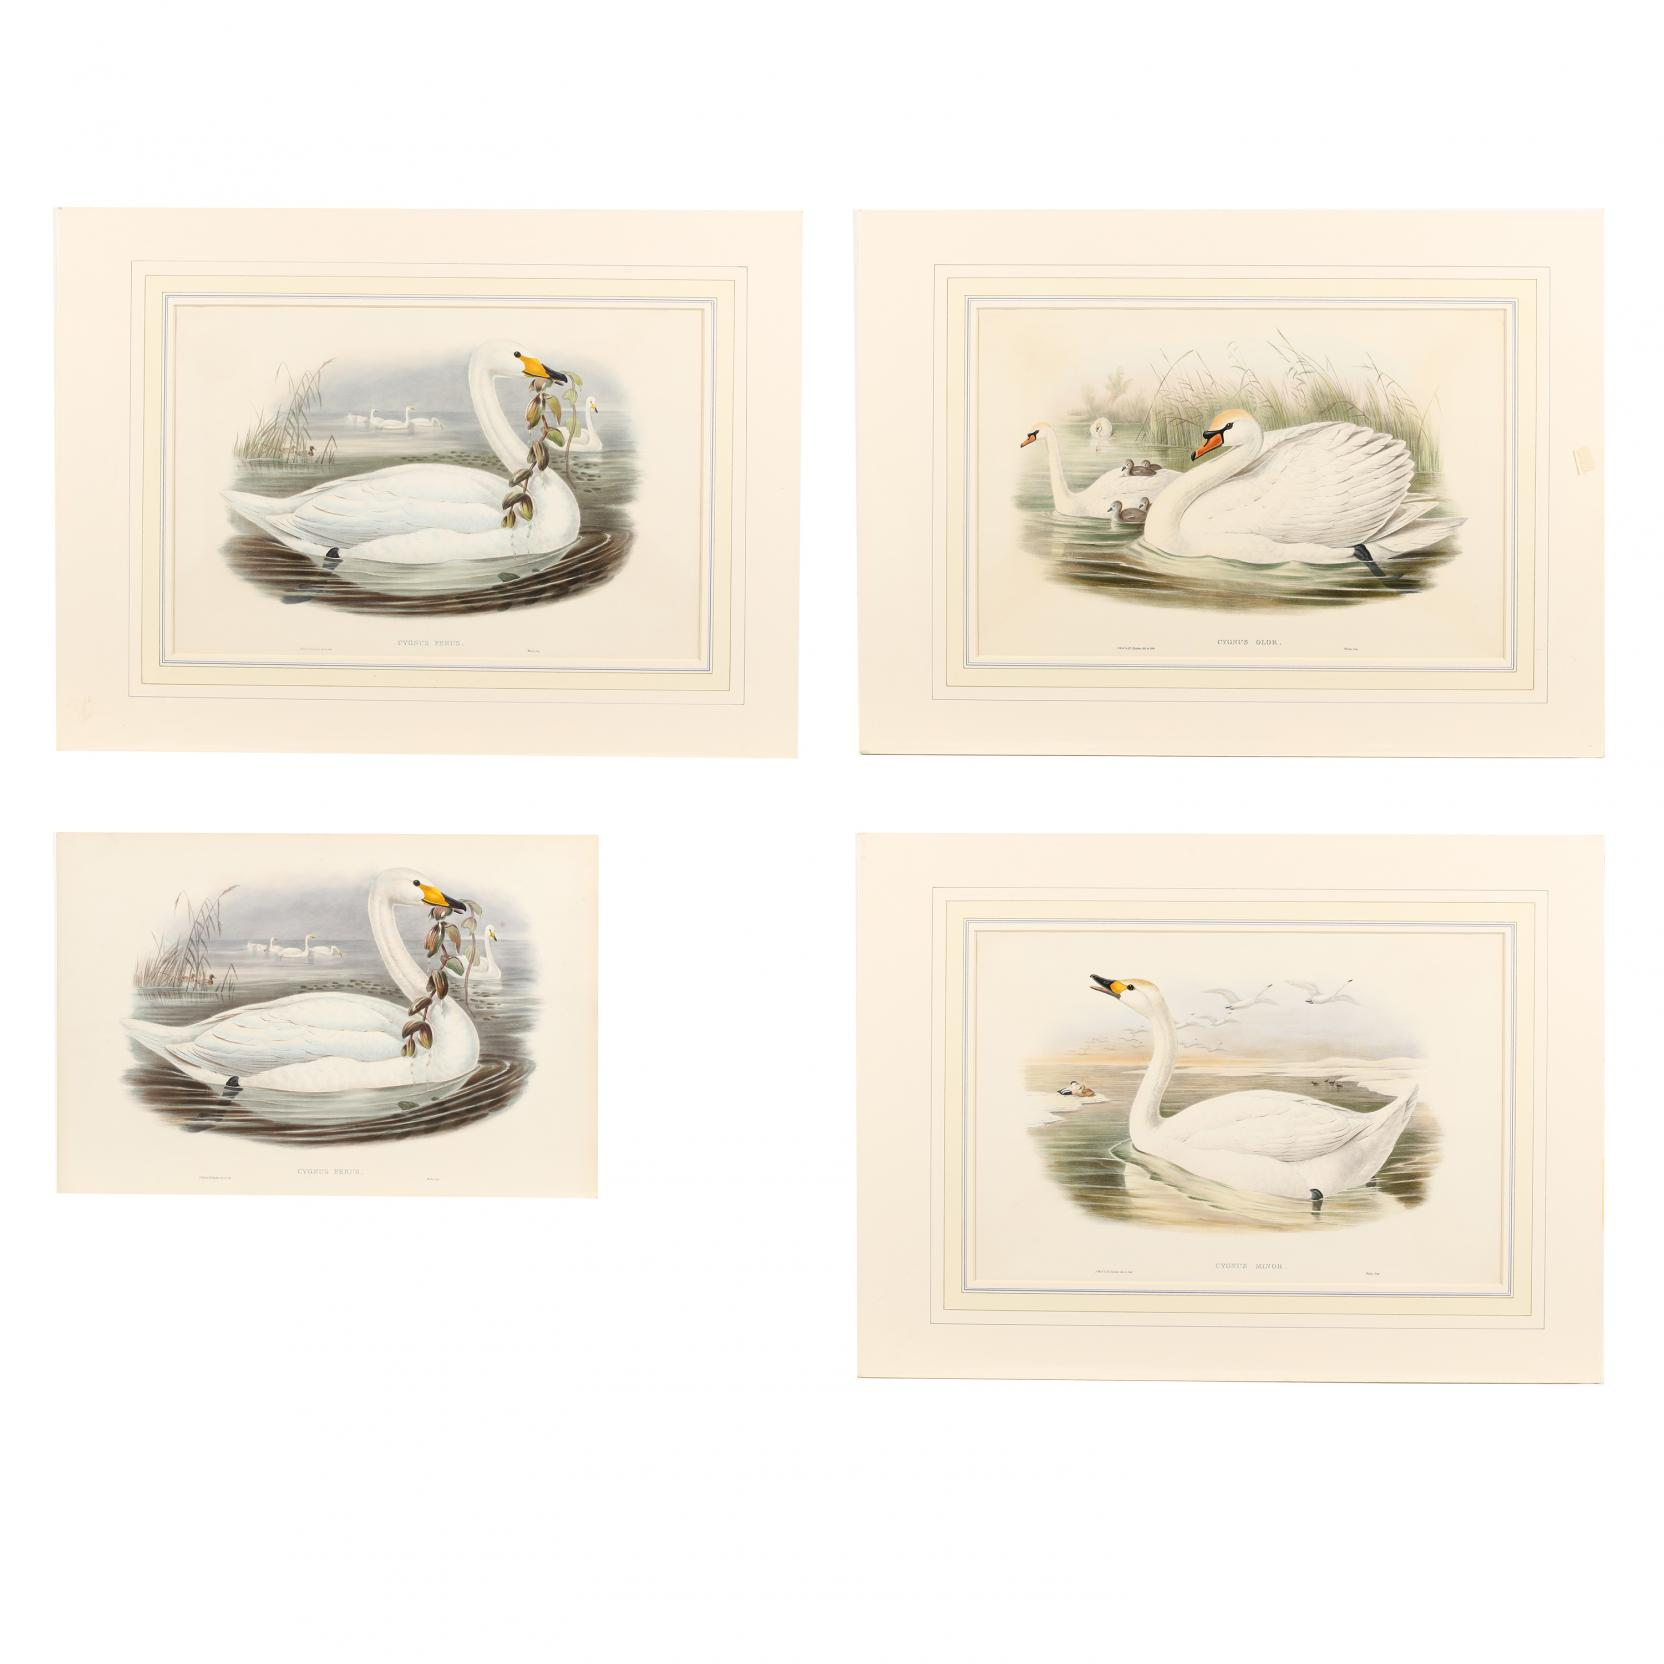 four-swan-prints-from-john-gould-s-i-the-birds-of-great-britain-i